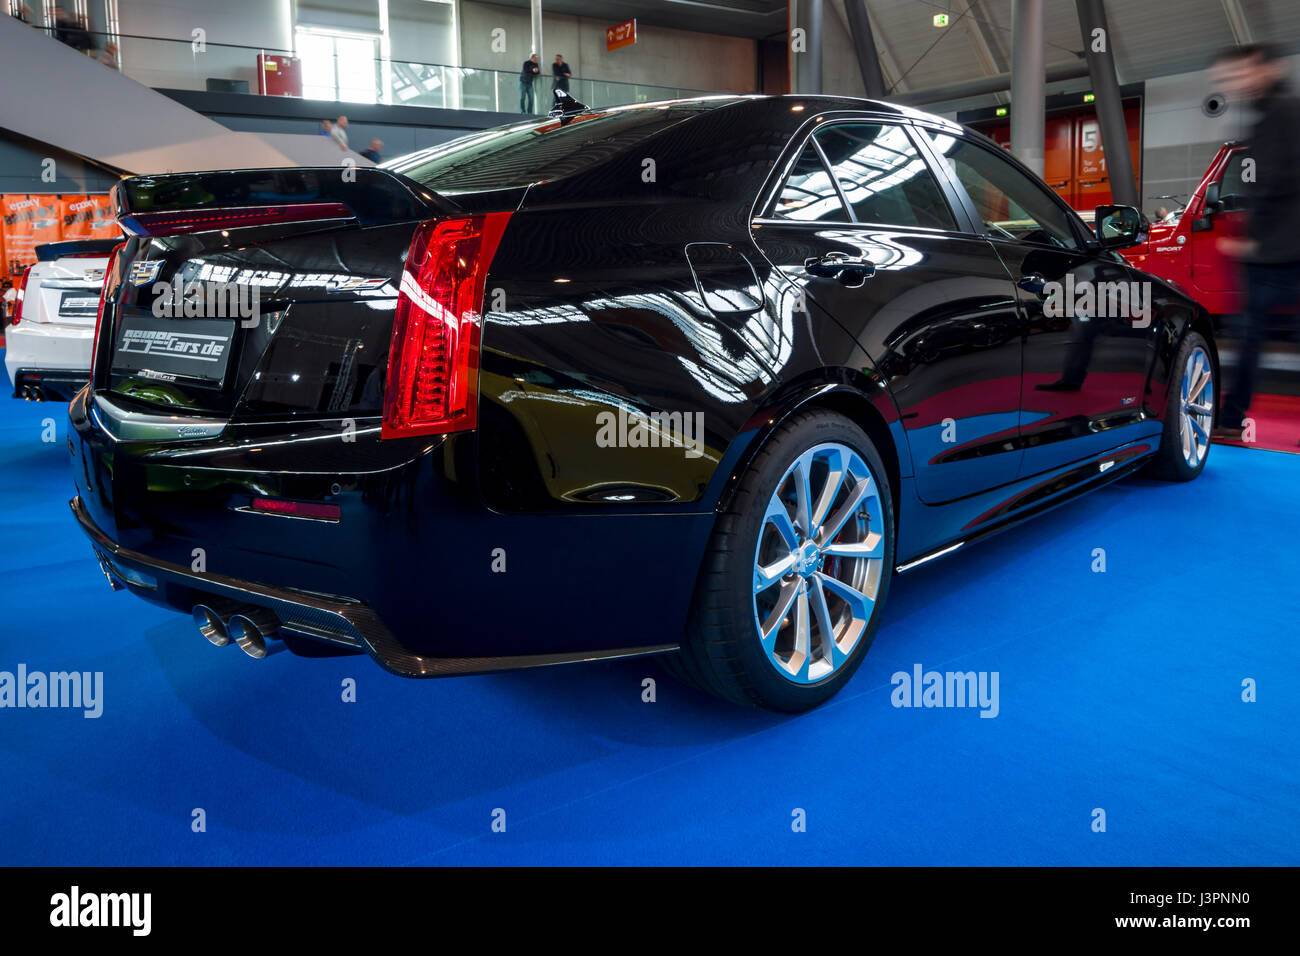 STUTTGART, GERMANY - MARCH 03, 2017: Entry-level luxury car Cadillac ATS-V, 2016. Rear view. Europe's greatest - Stock Image